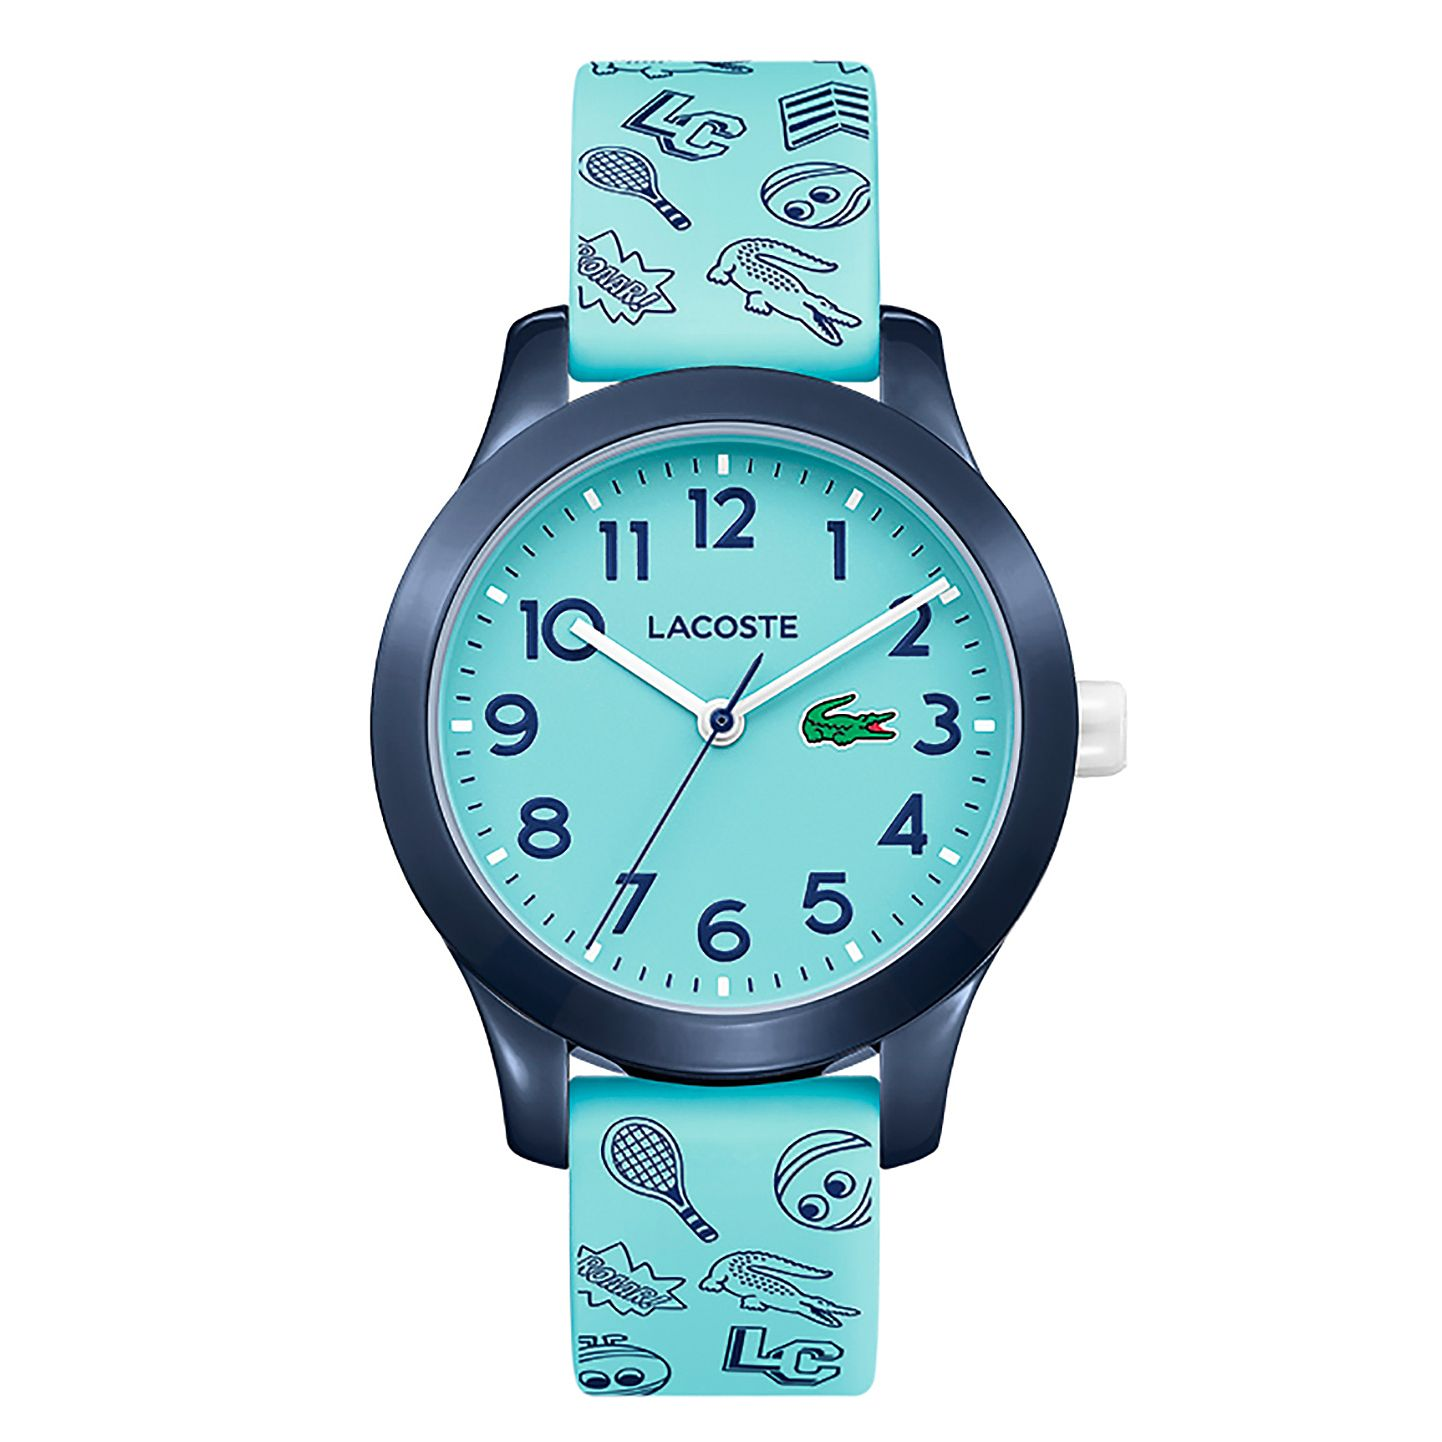 Lacoste 12.12 Children's Blue Printed Silicone Strap Watch - Product number 2942550